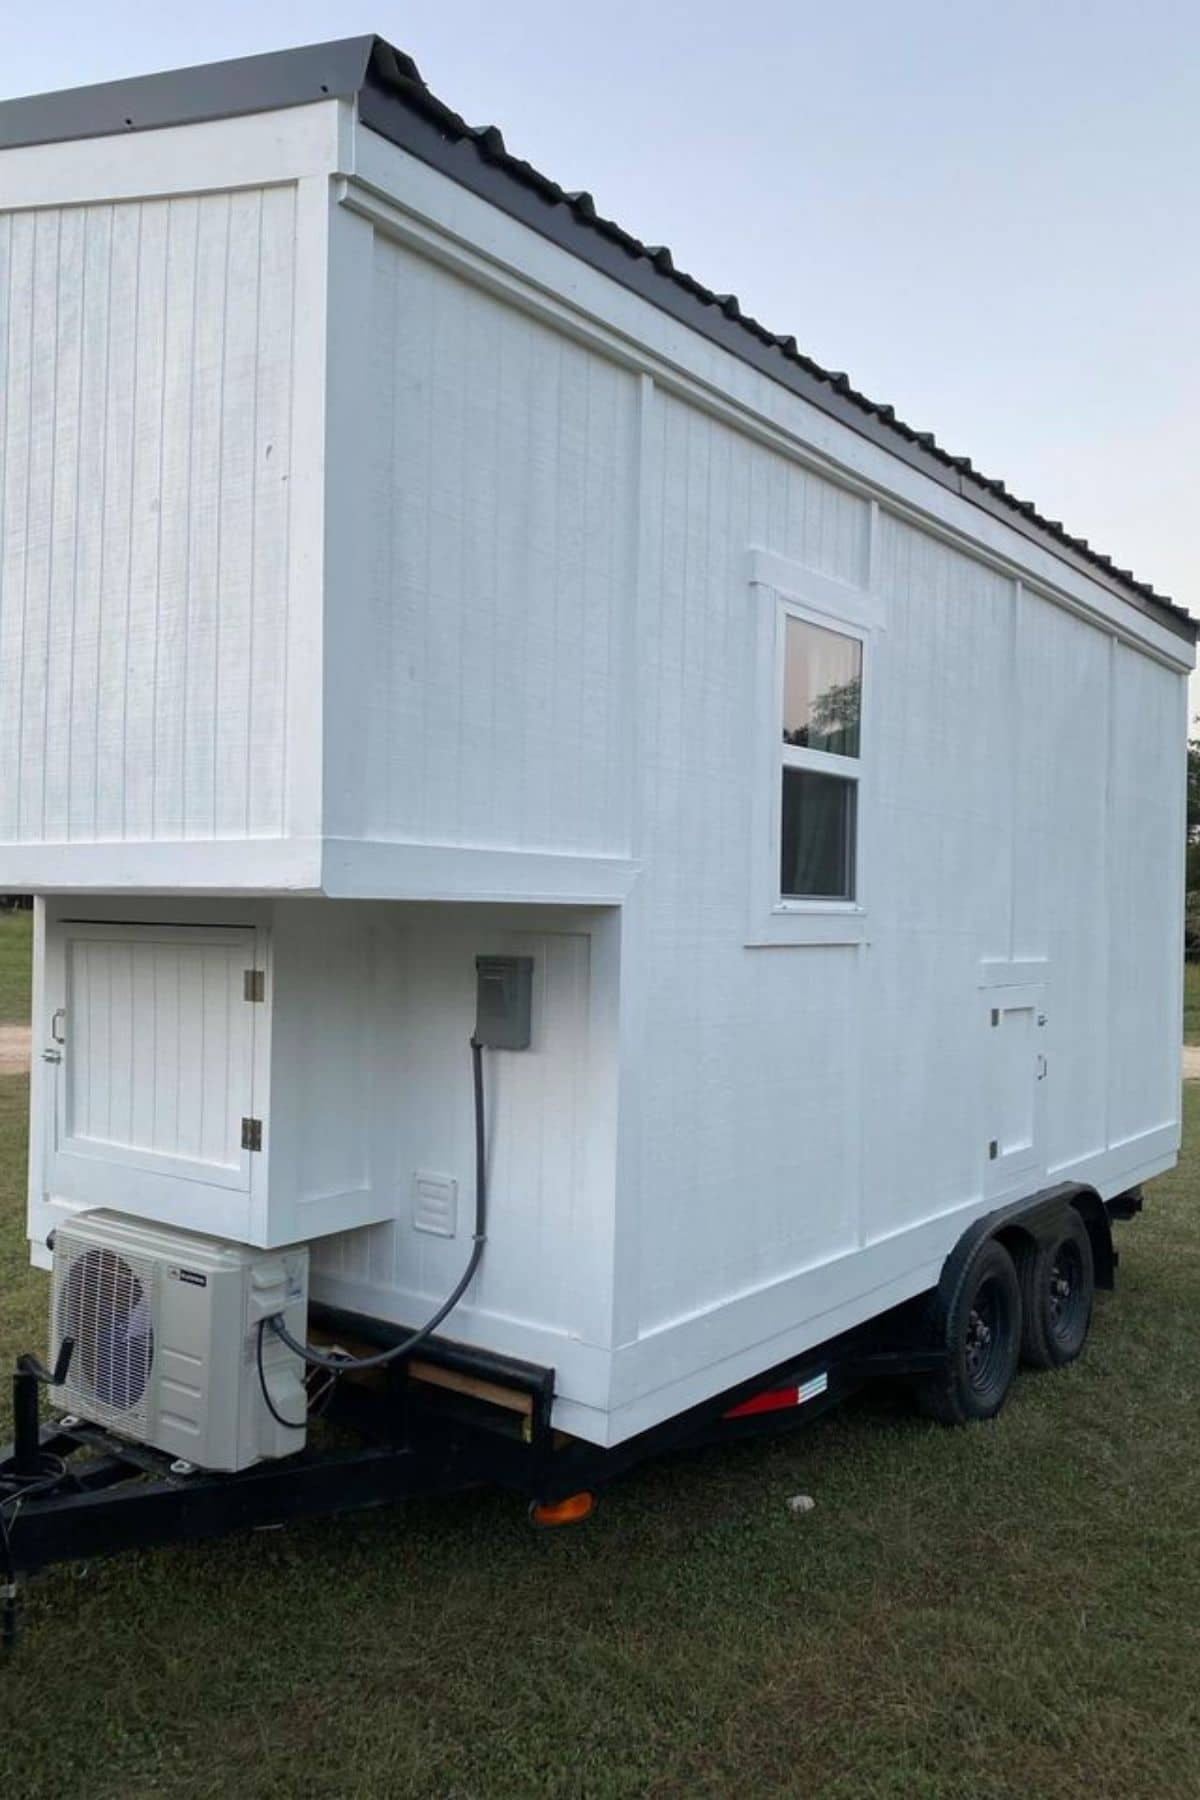 End of white tiny home showing air conditioning unit at bottom by hookups